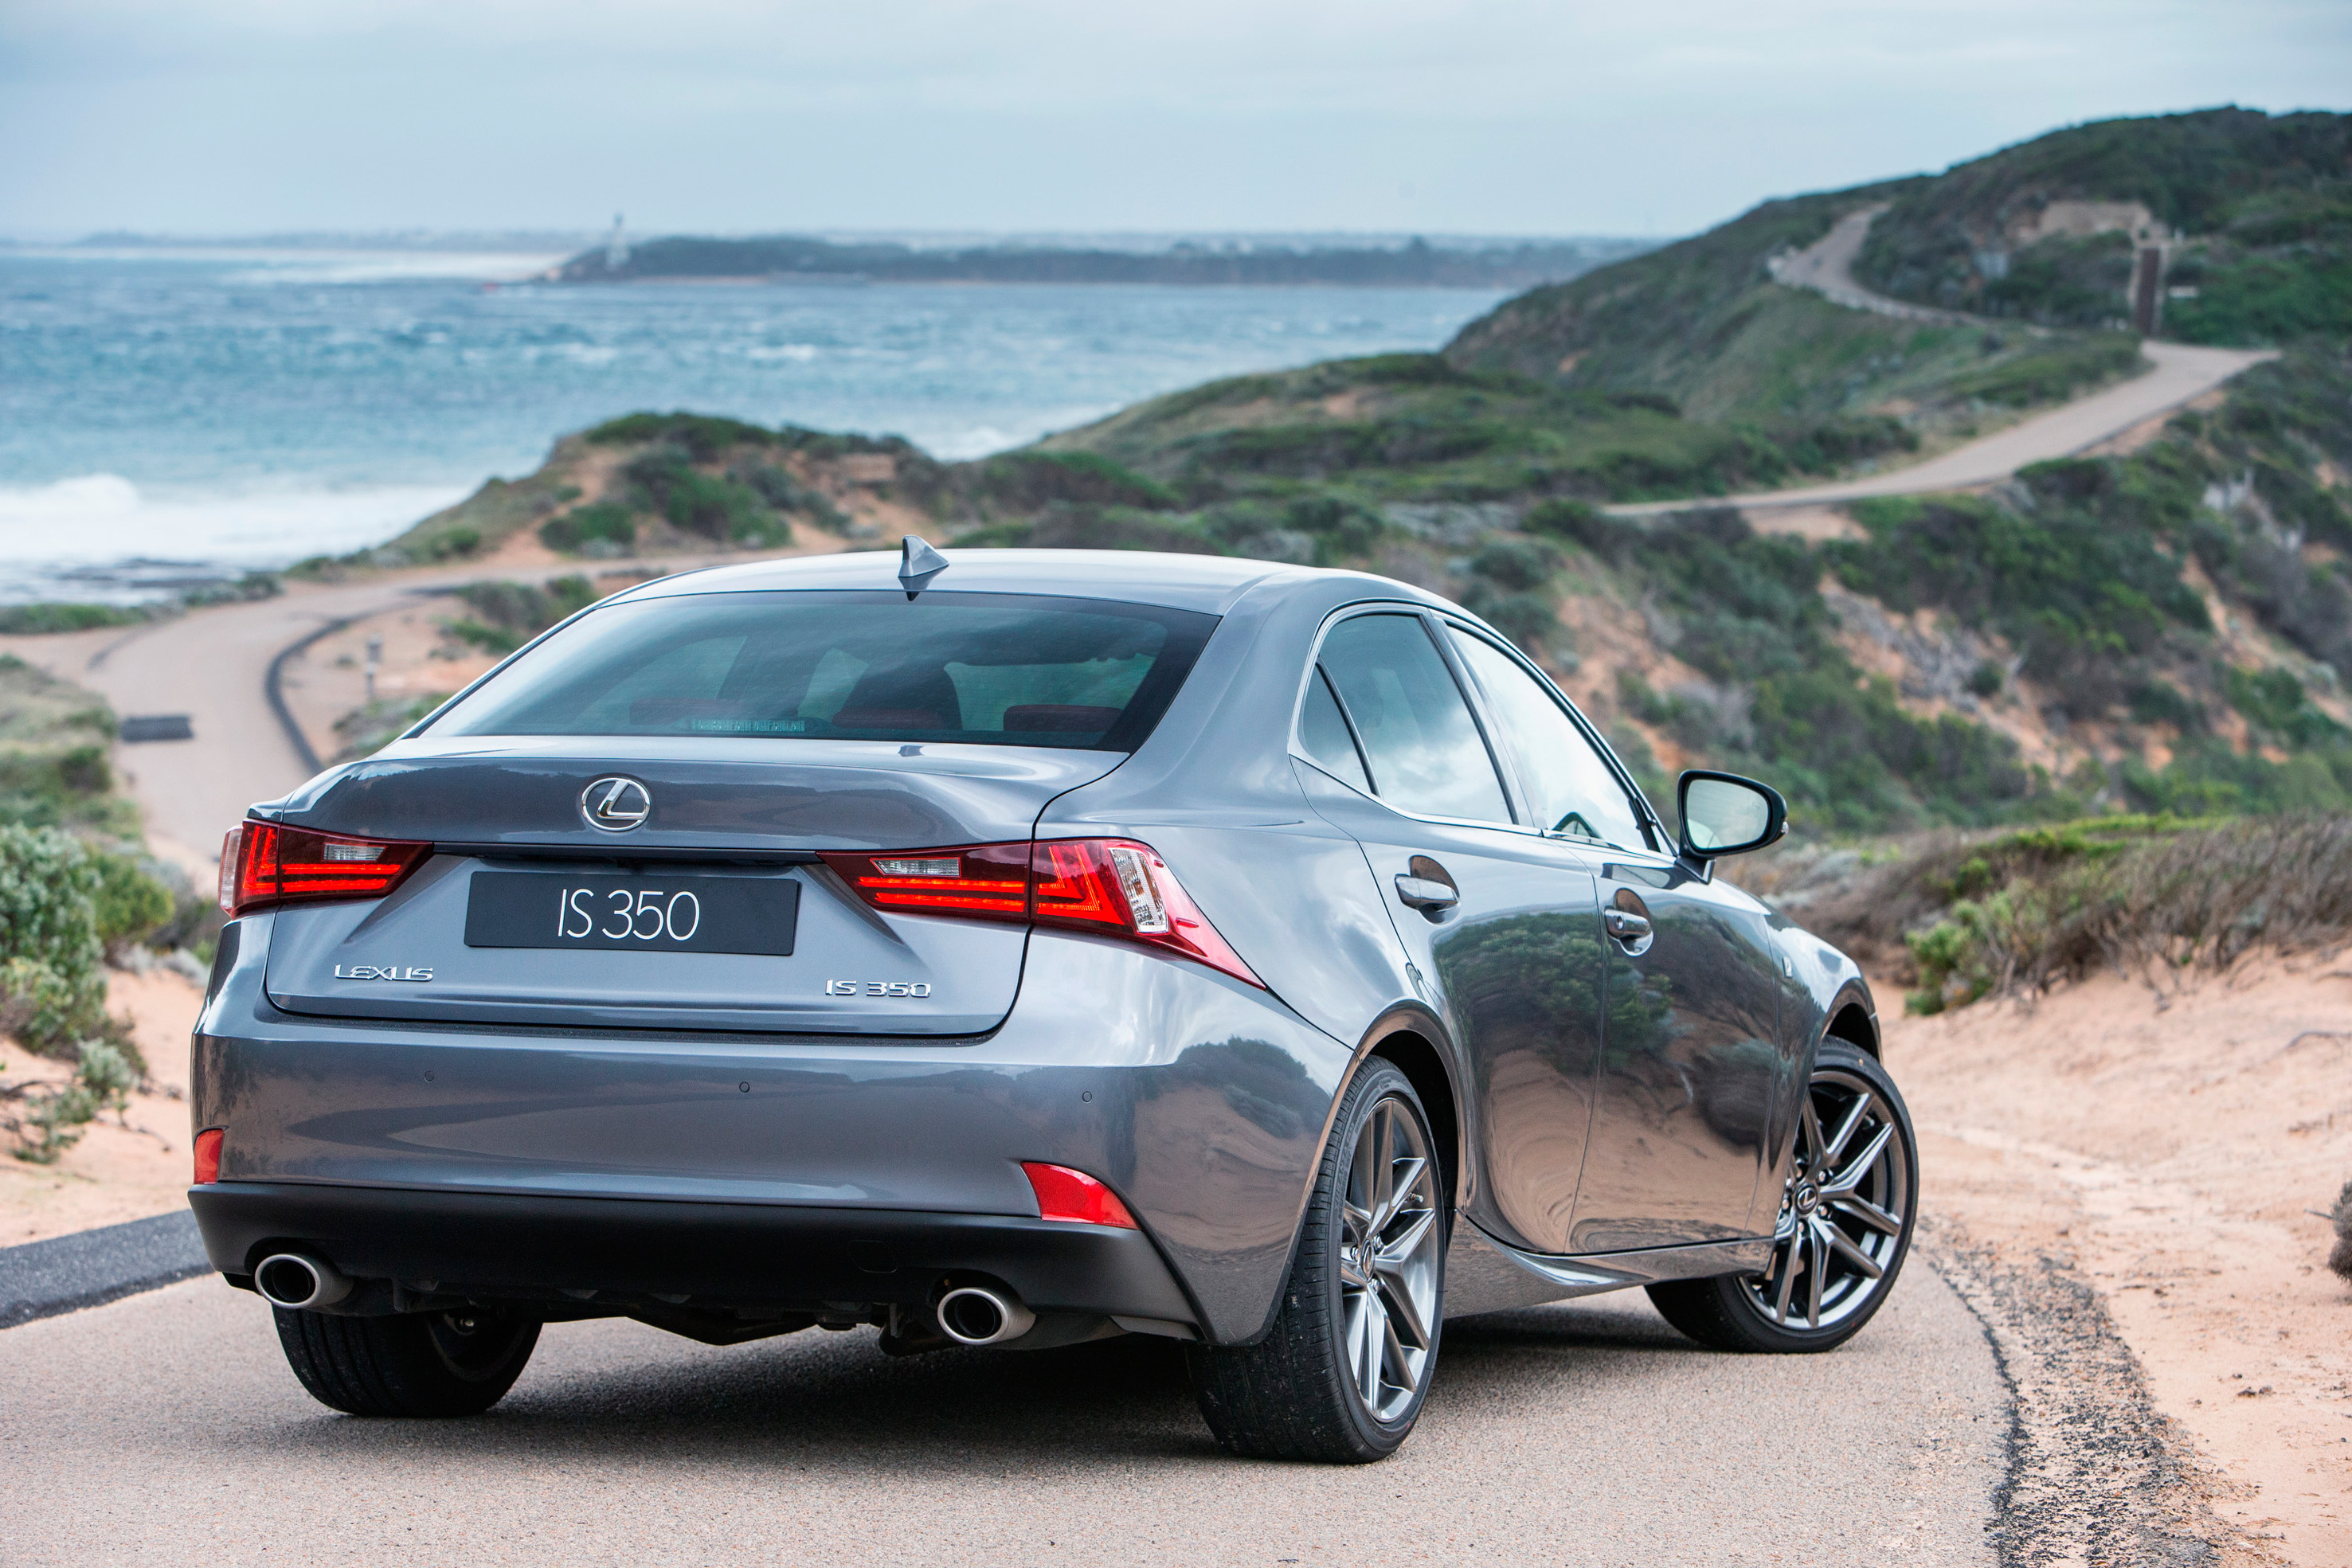 2013 lexus is 350 - partsopen